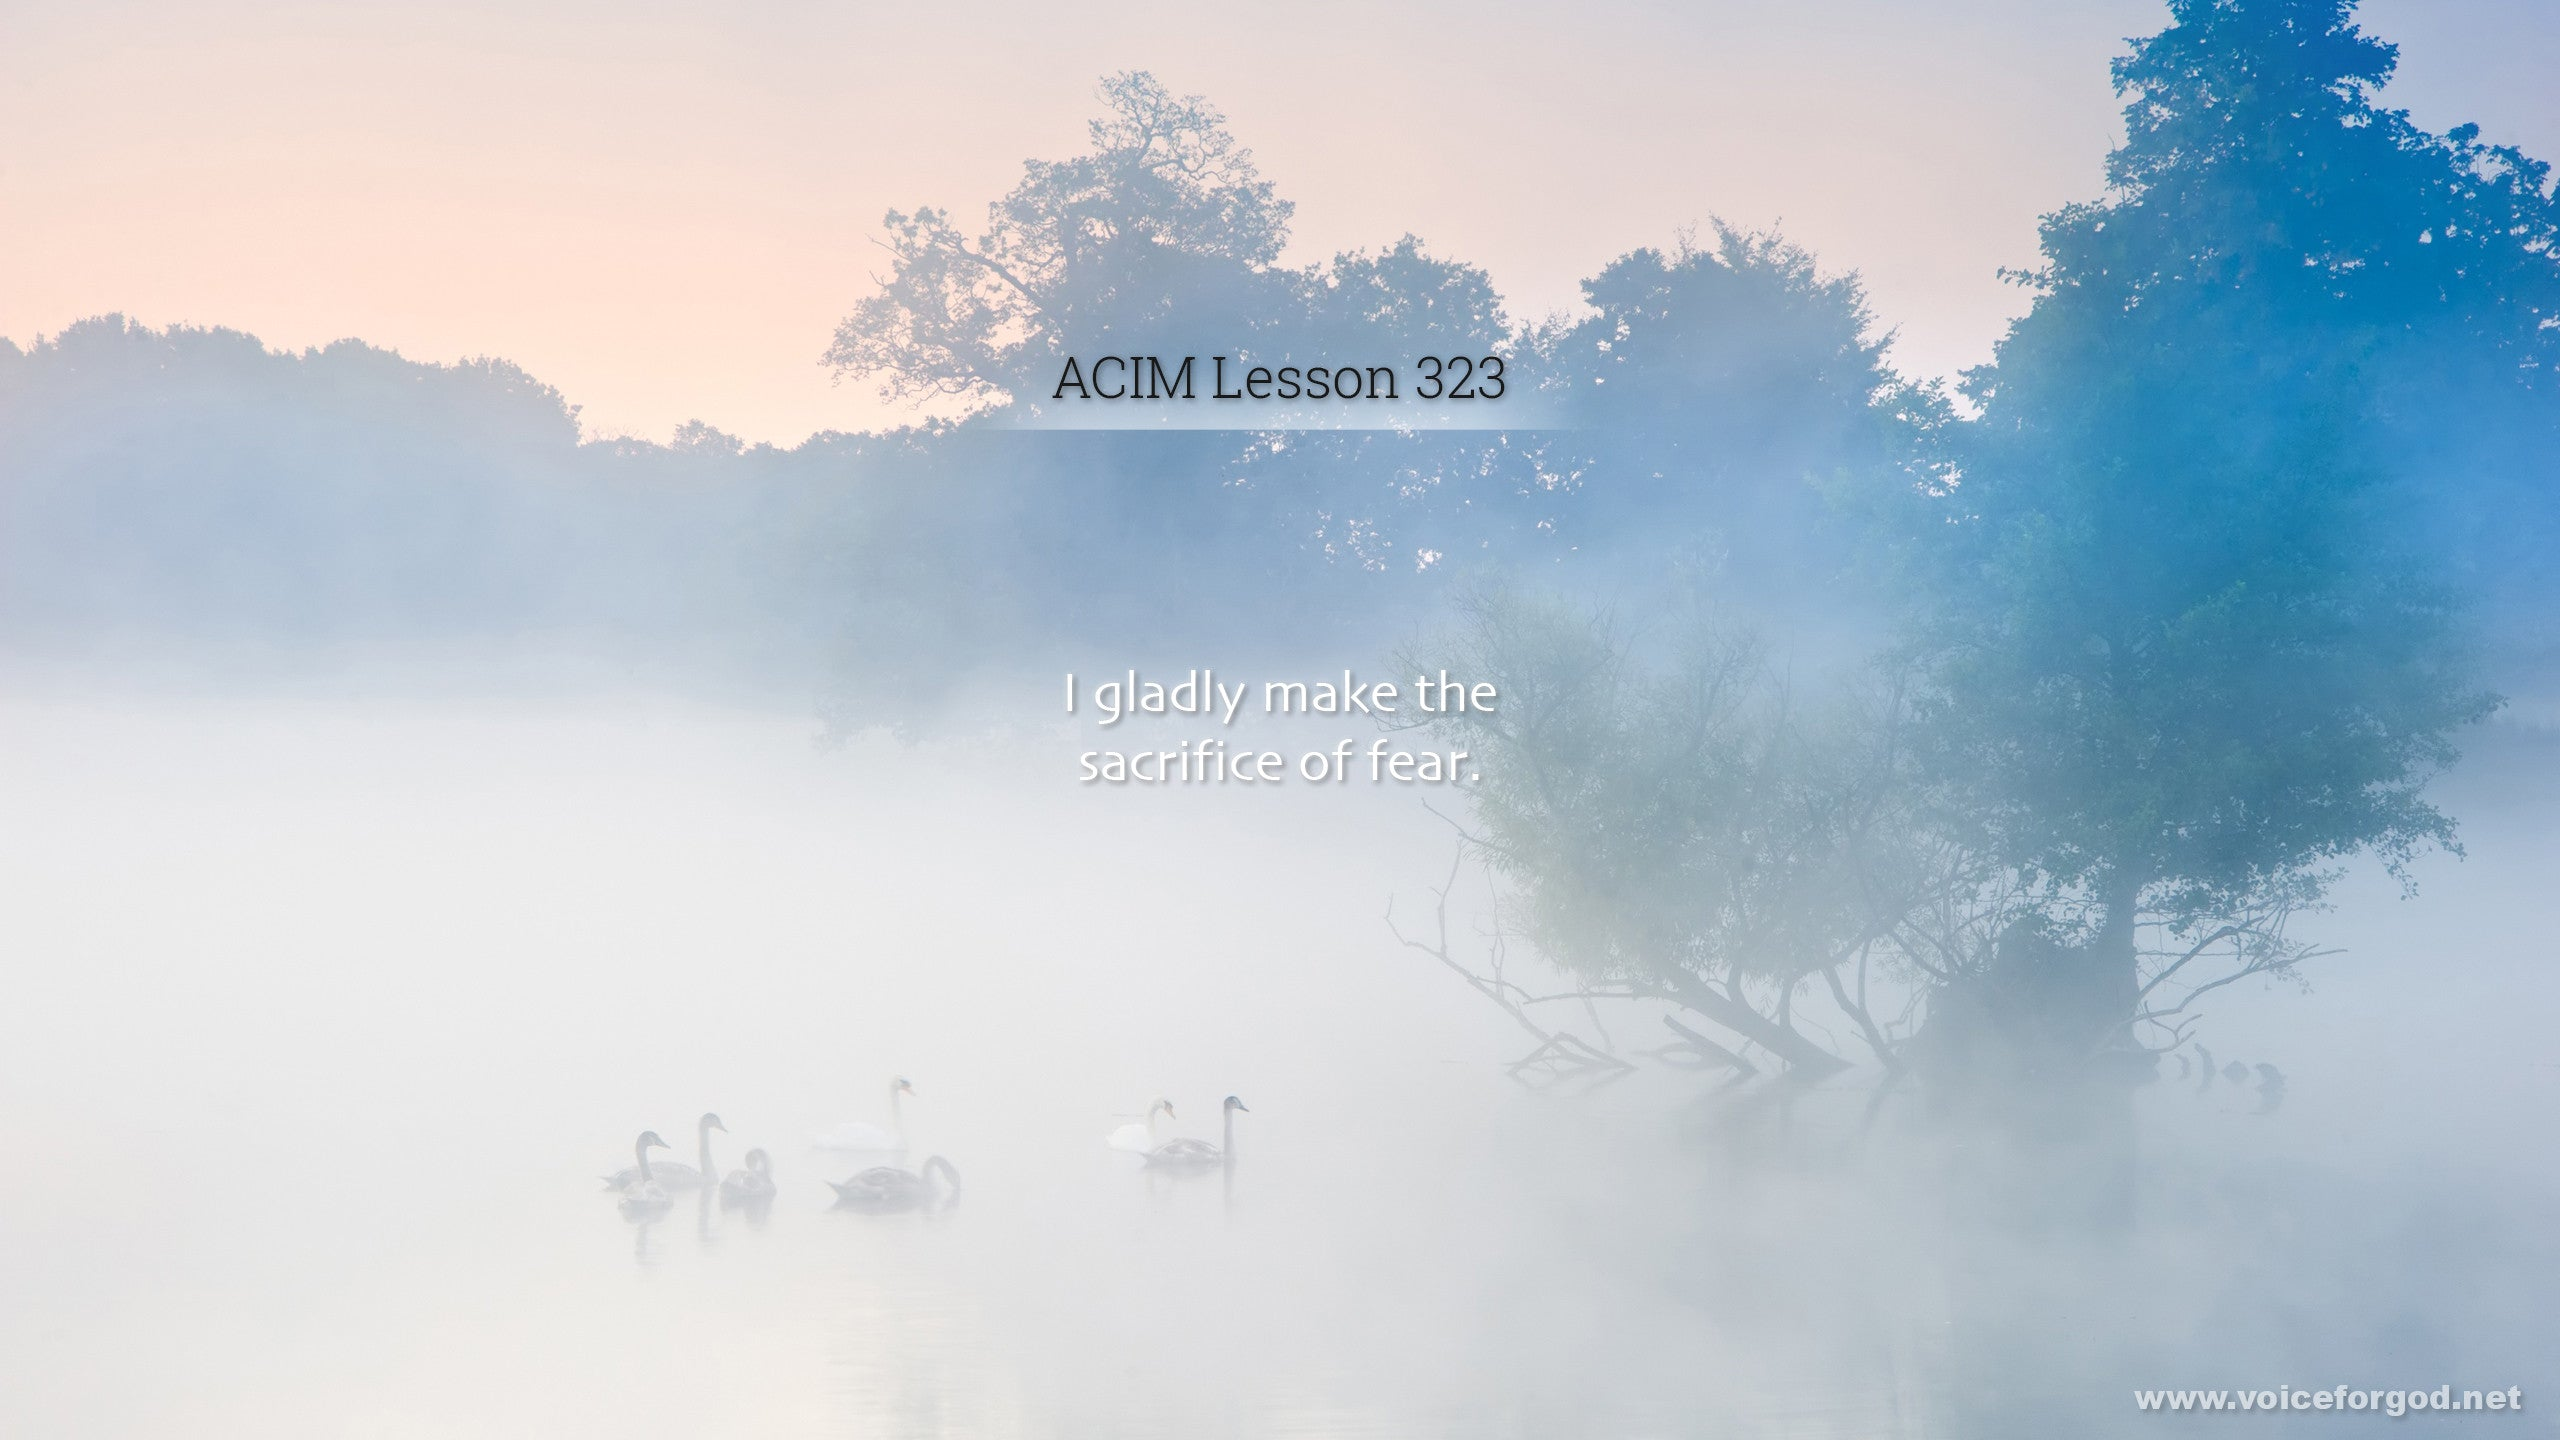 ACIM Lesson 323 - A Course in Miracles Workbook Lesson 323